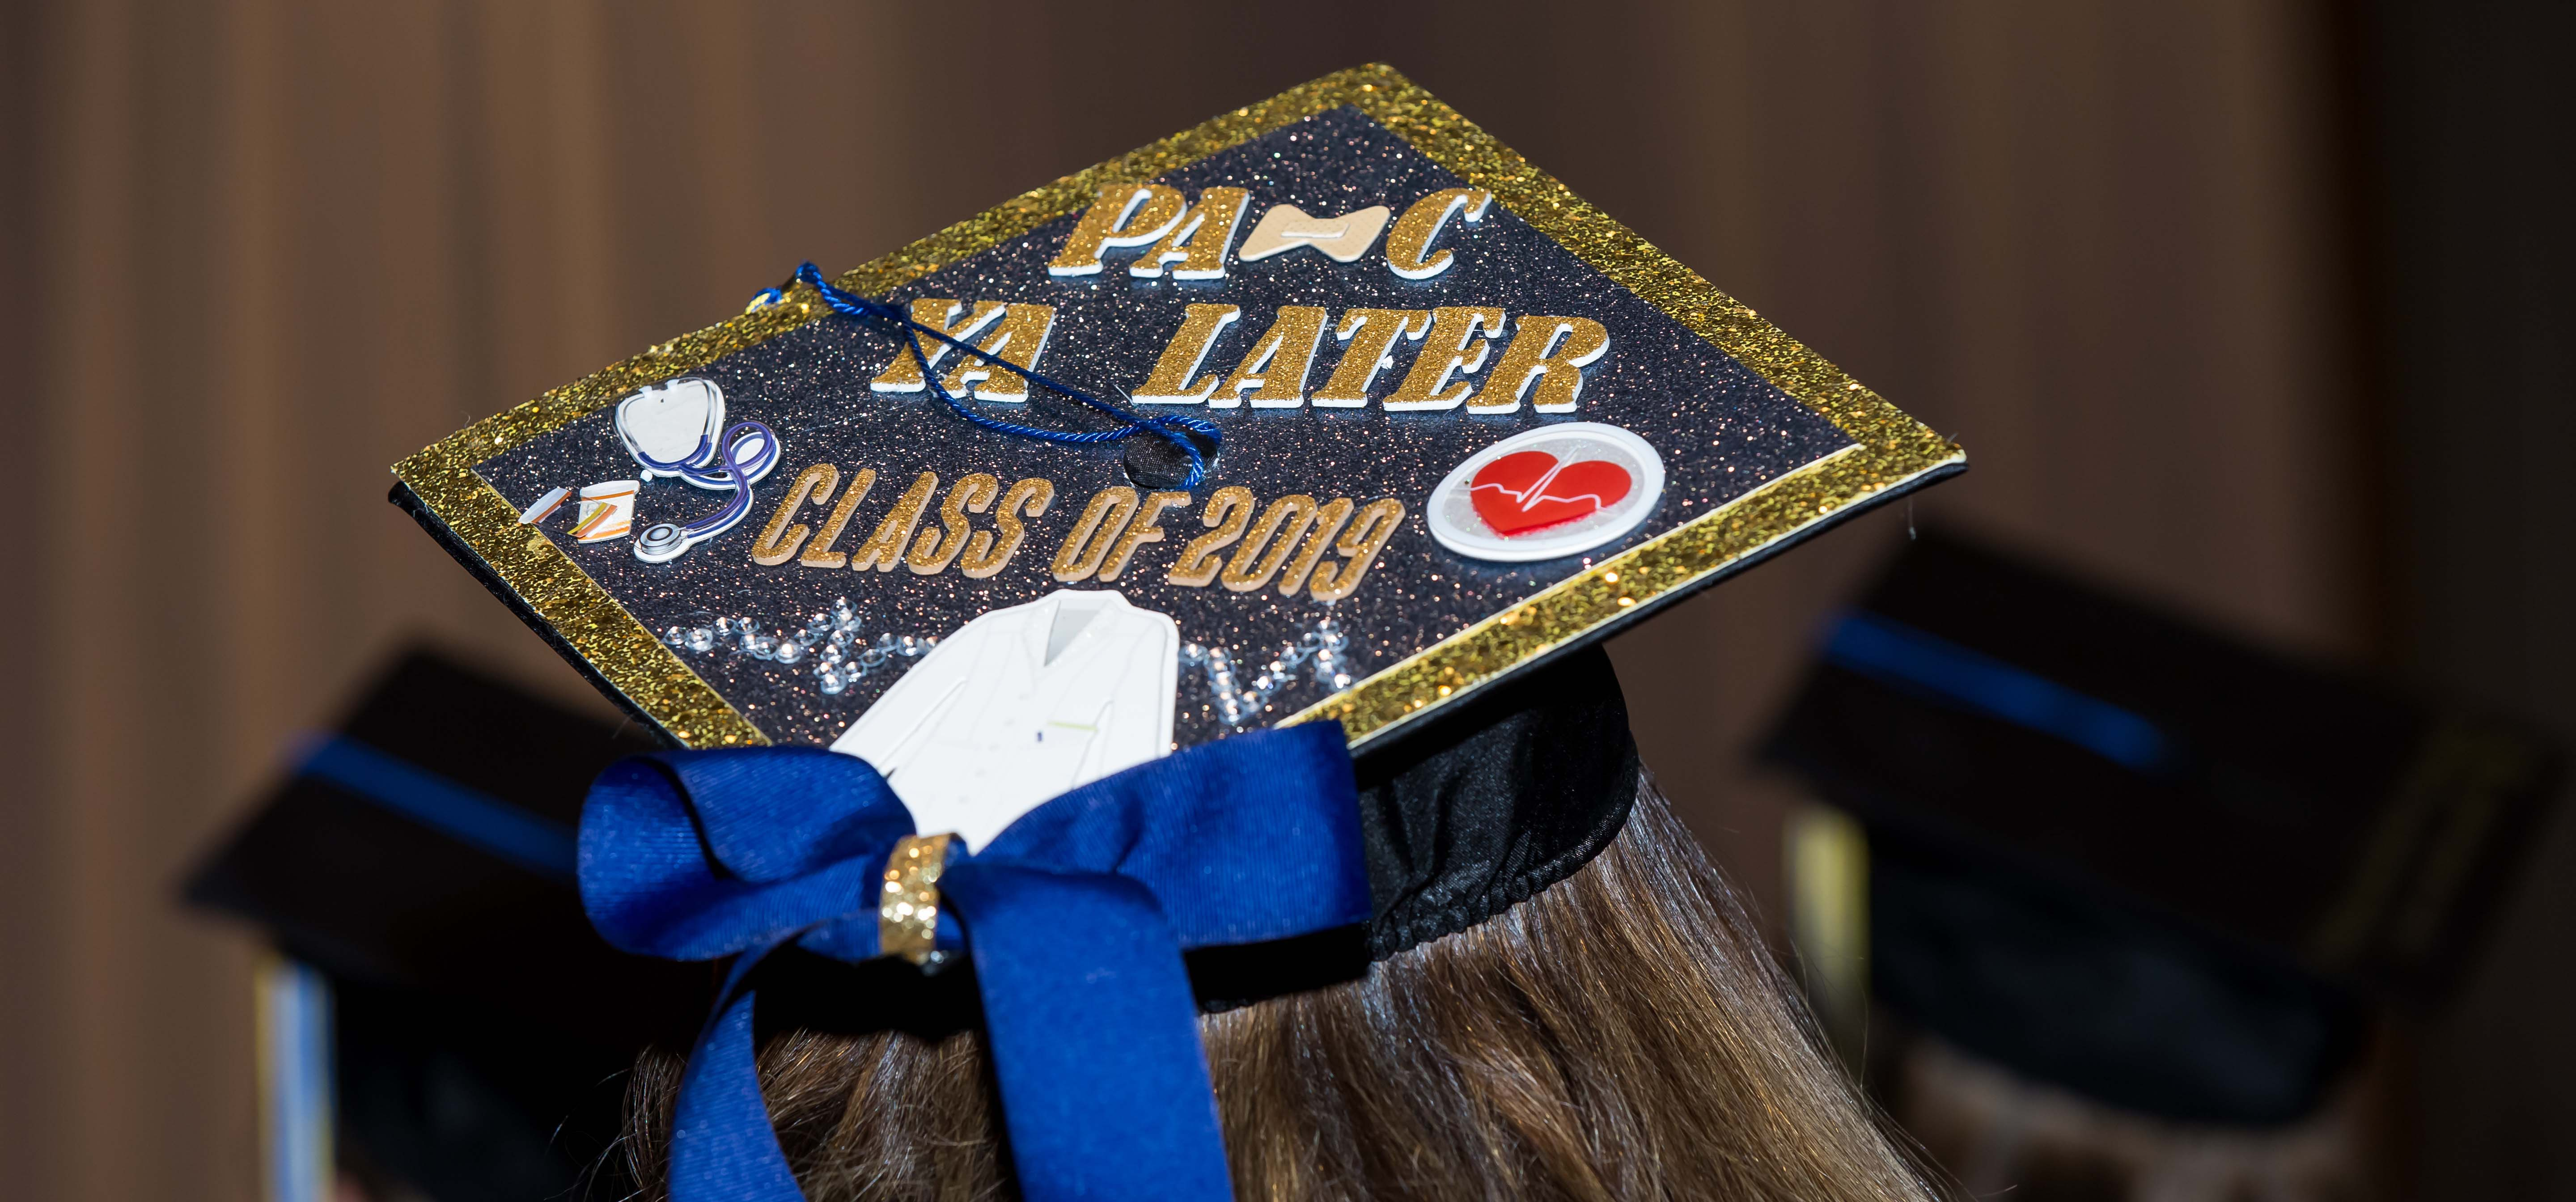 School of Physician Assistant Studies Graduation Cap from Winter Commencement 2019